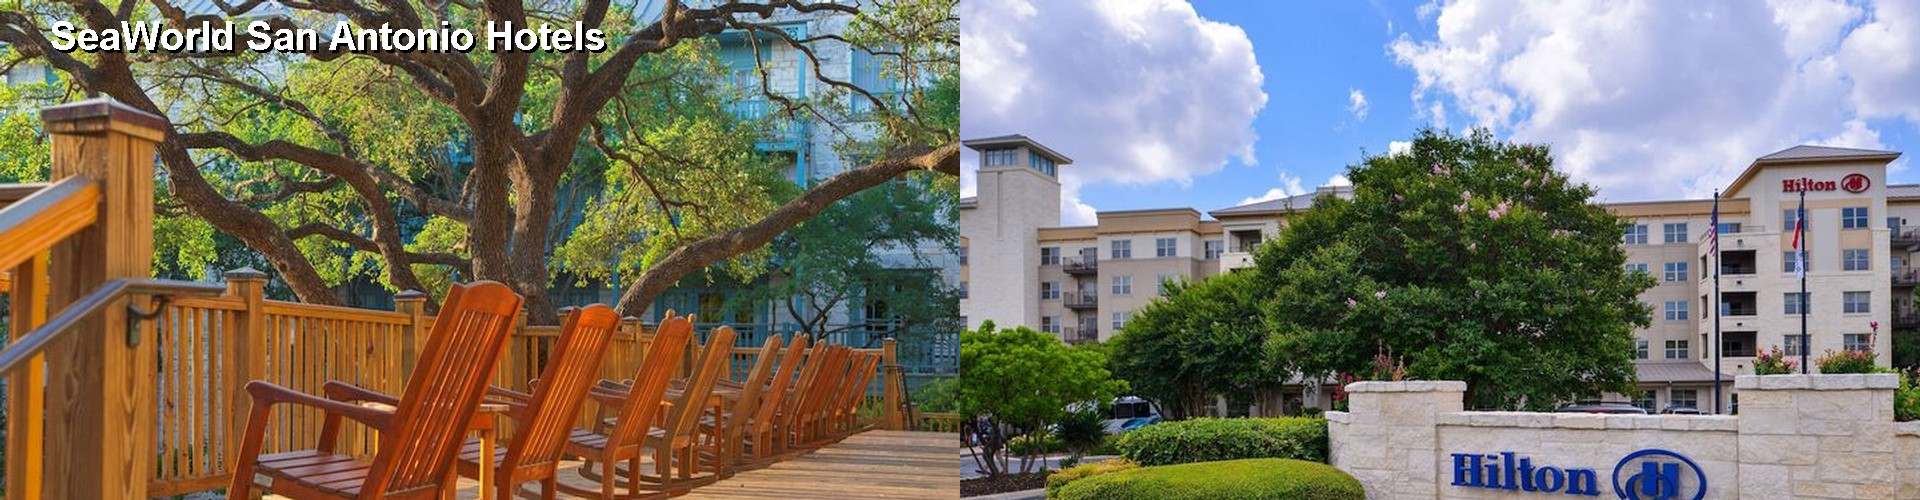 5 Best Hotels Near Seaworld San Antonio